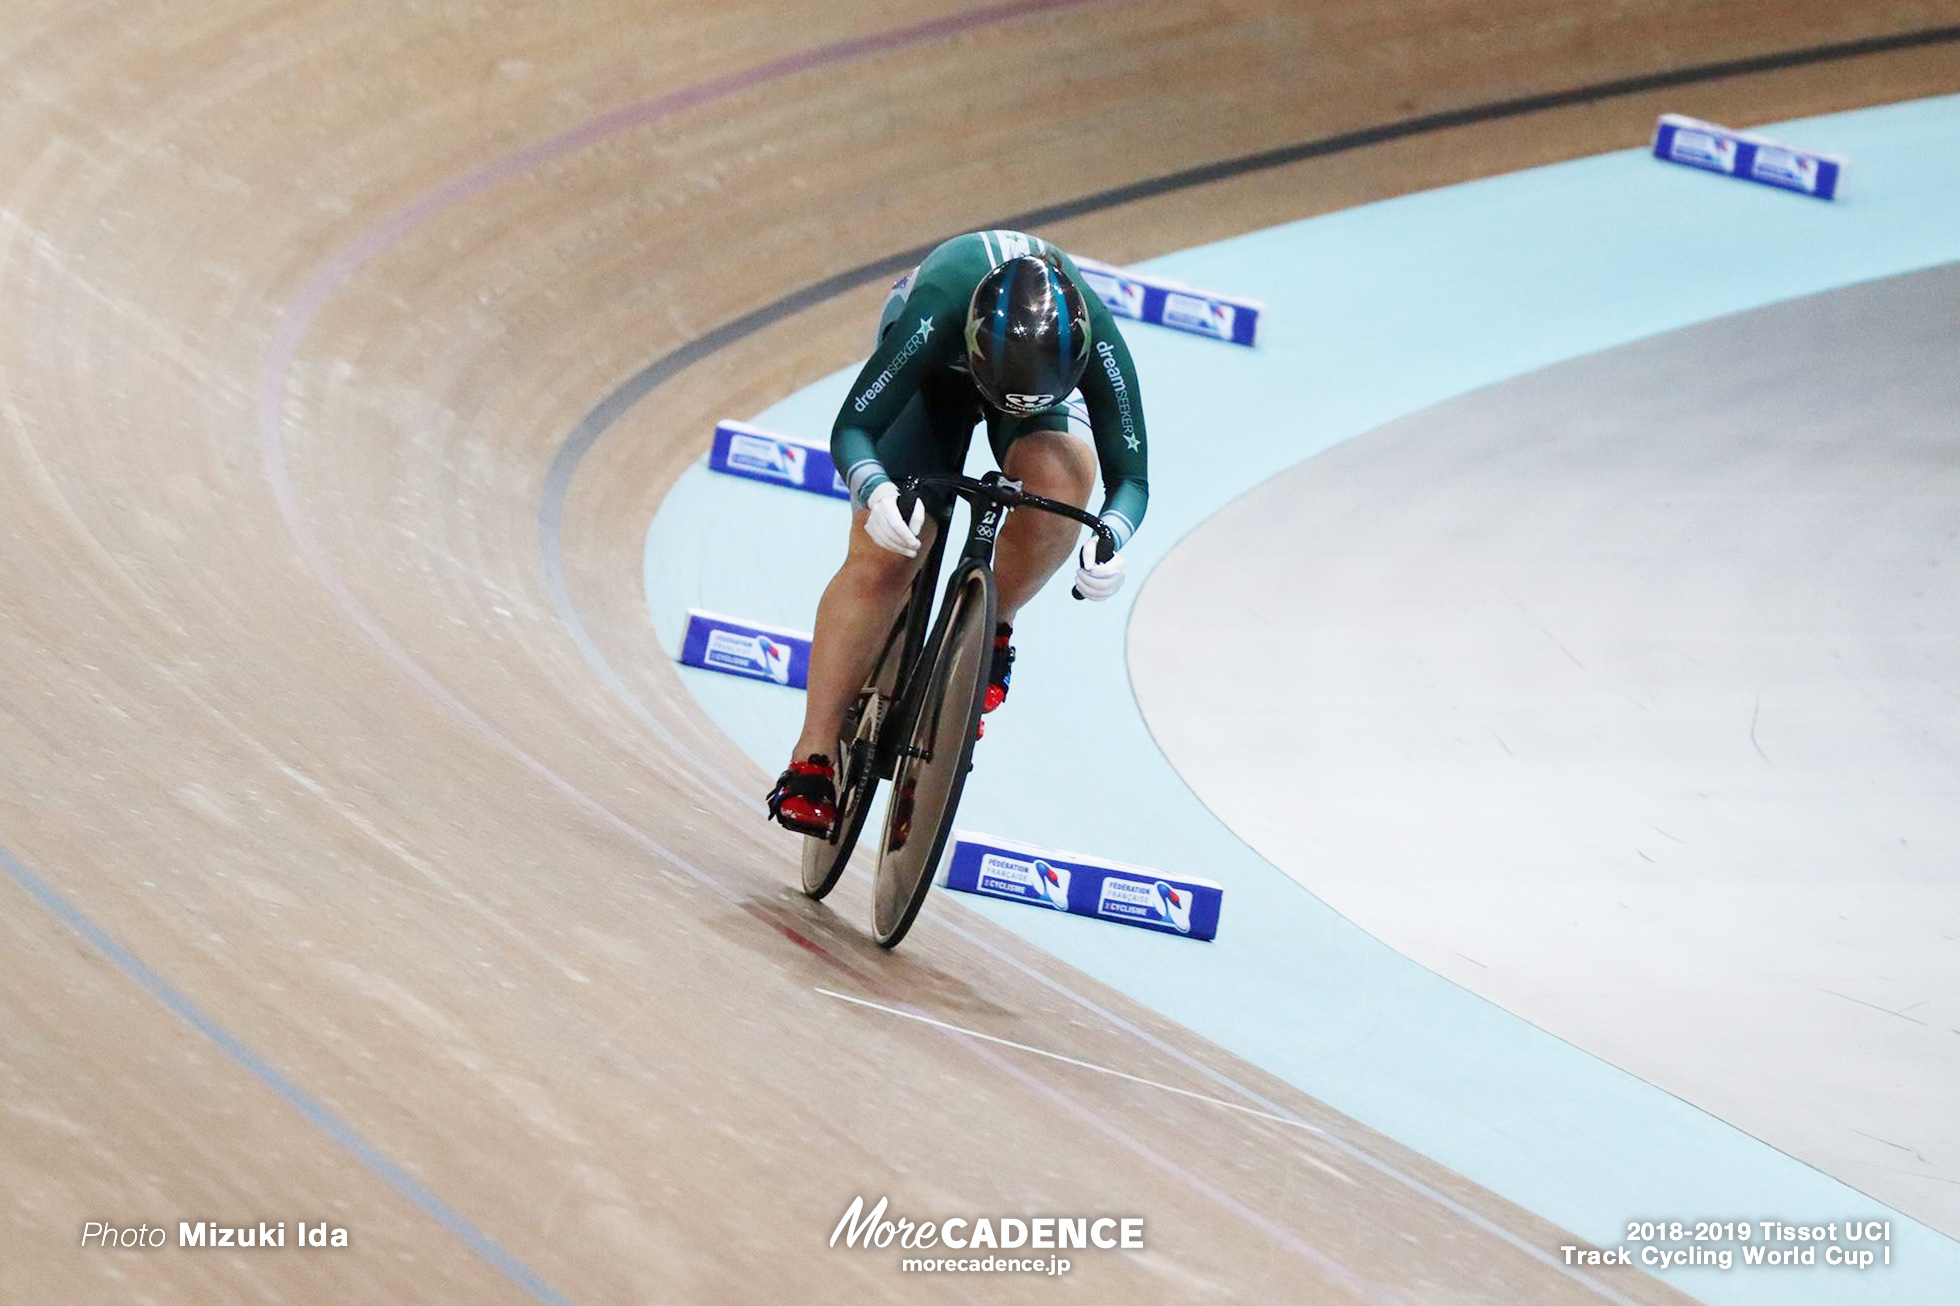 2018-2019 TRACK CYCLING WORLD CUP I Women's Sprint